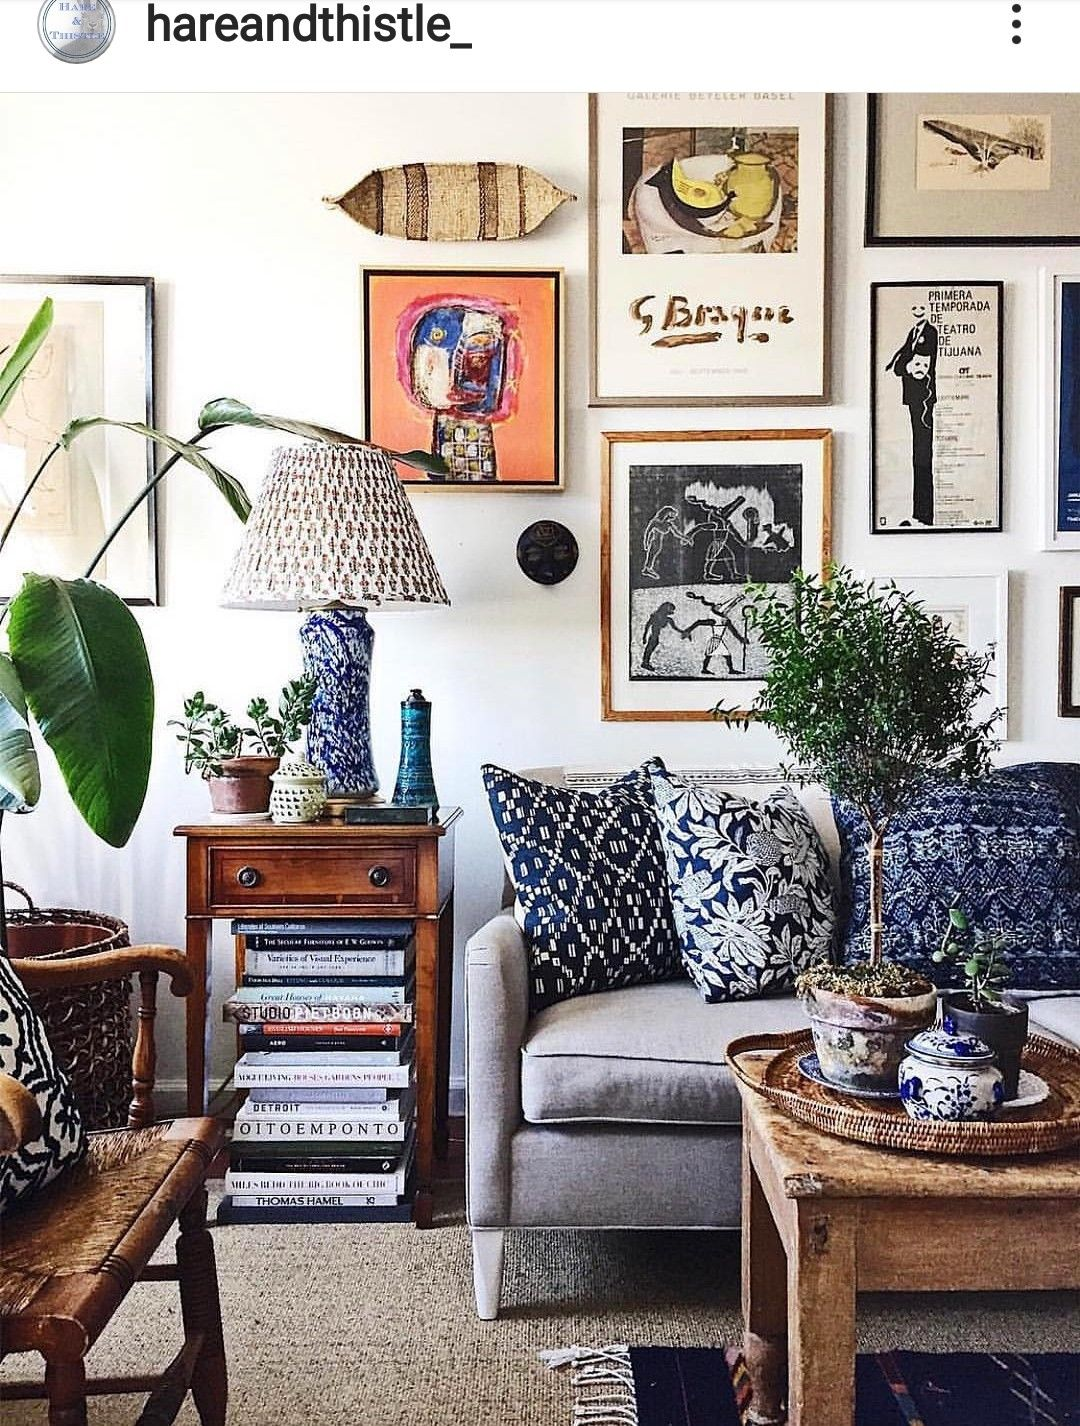 Vintage Living Room Ideas For Small Spaces: Pin By Mina Jahangir On Home Decor